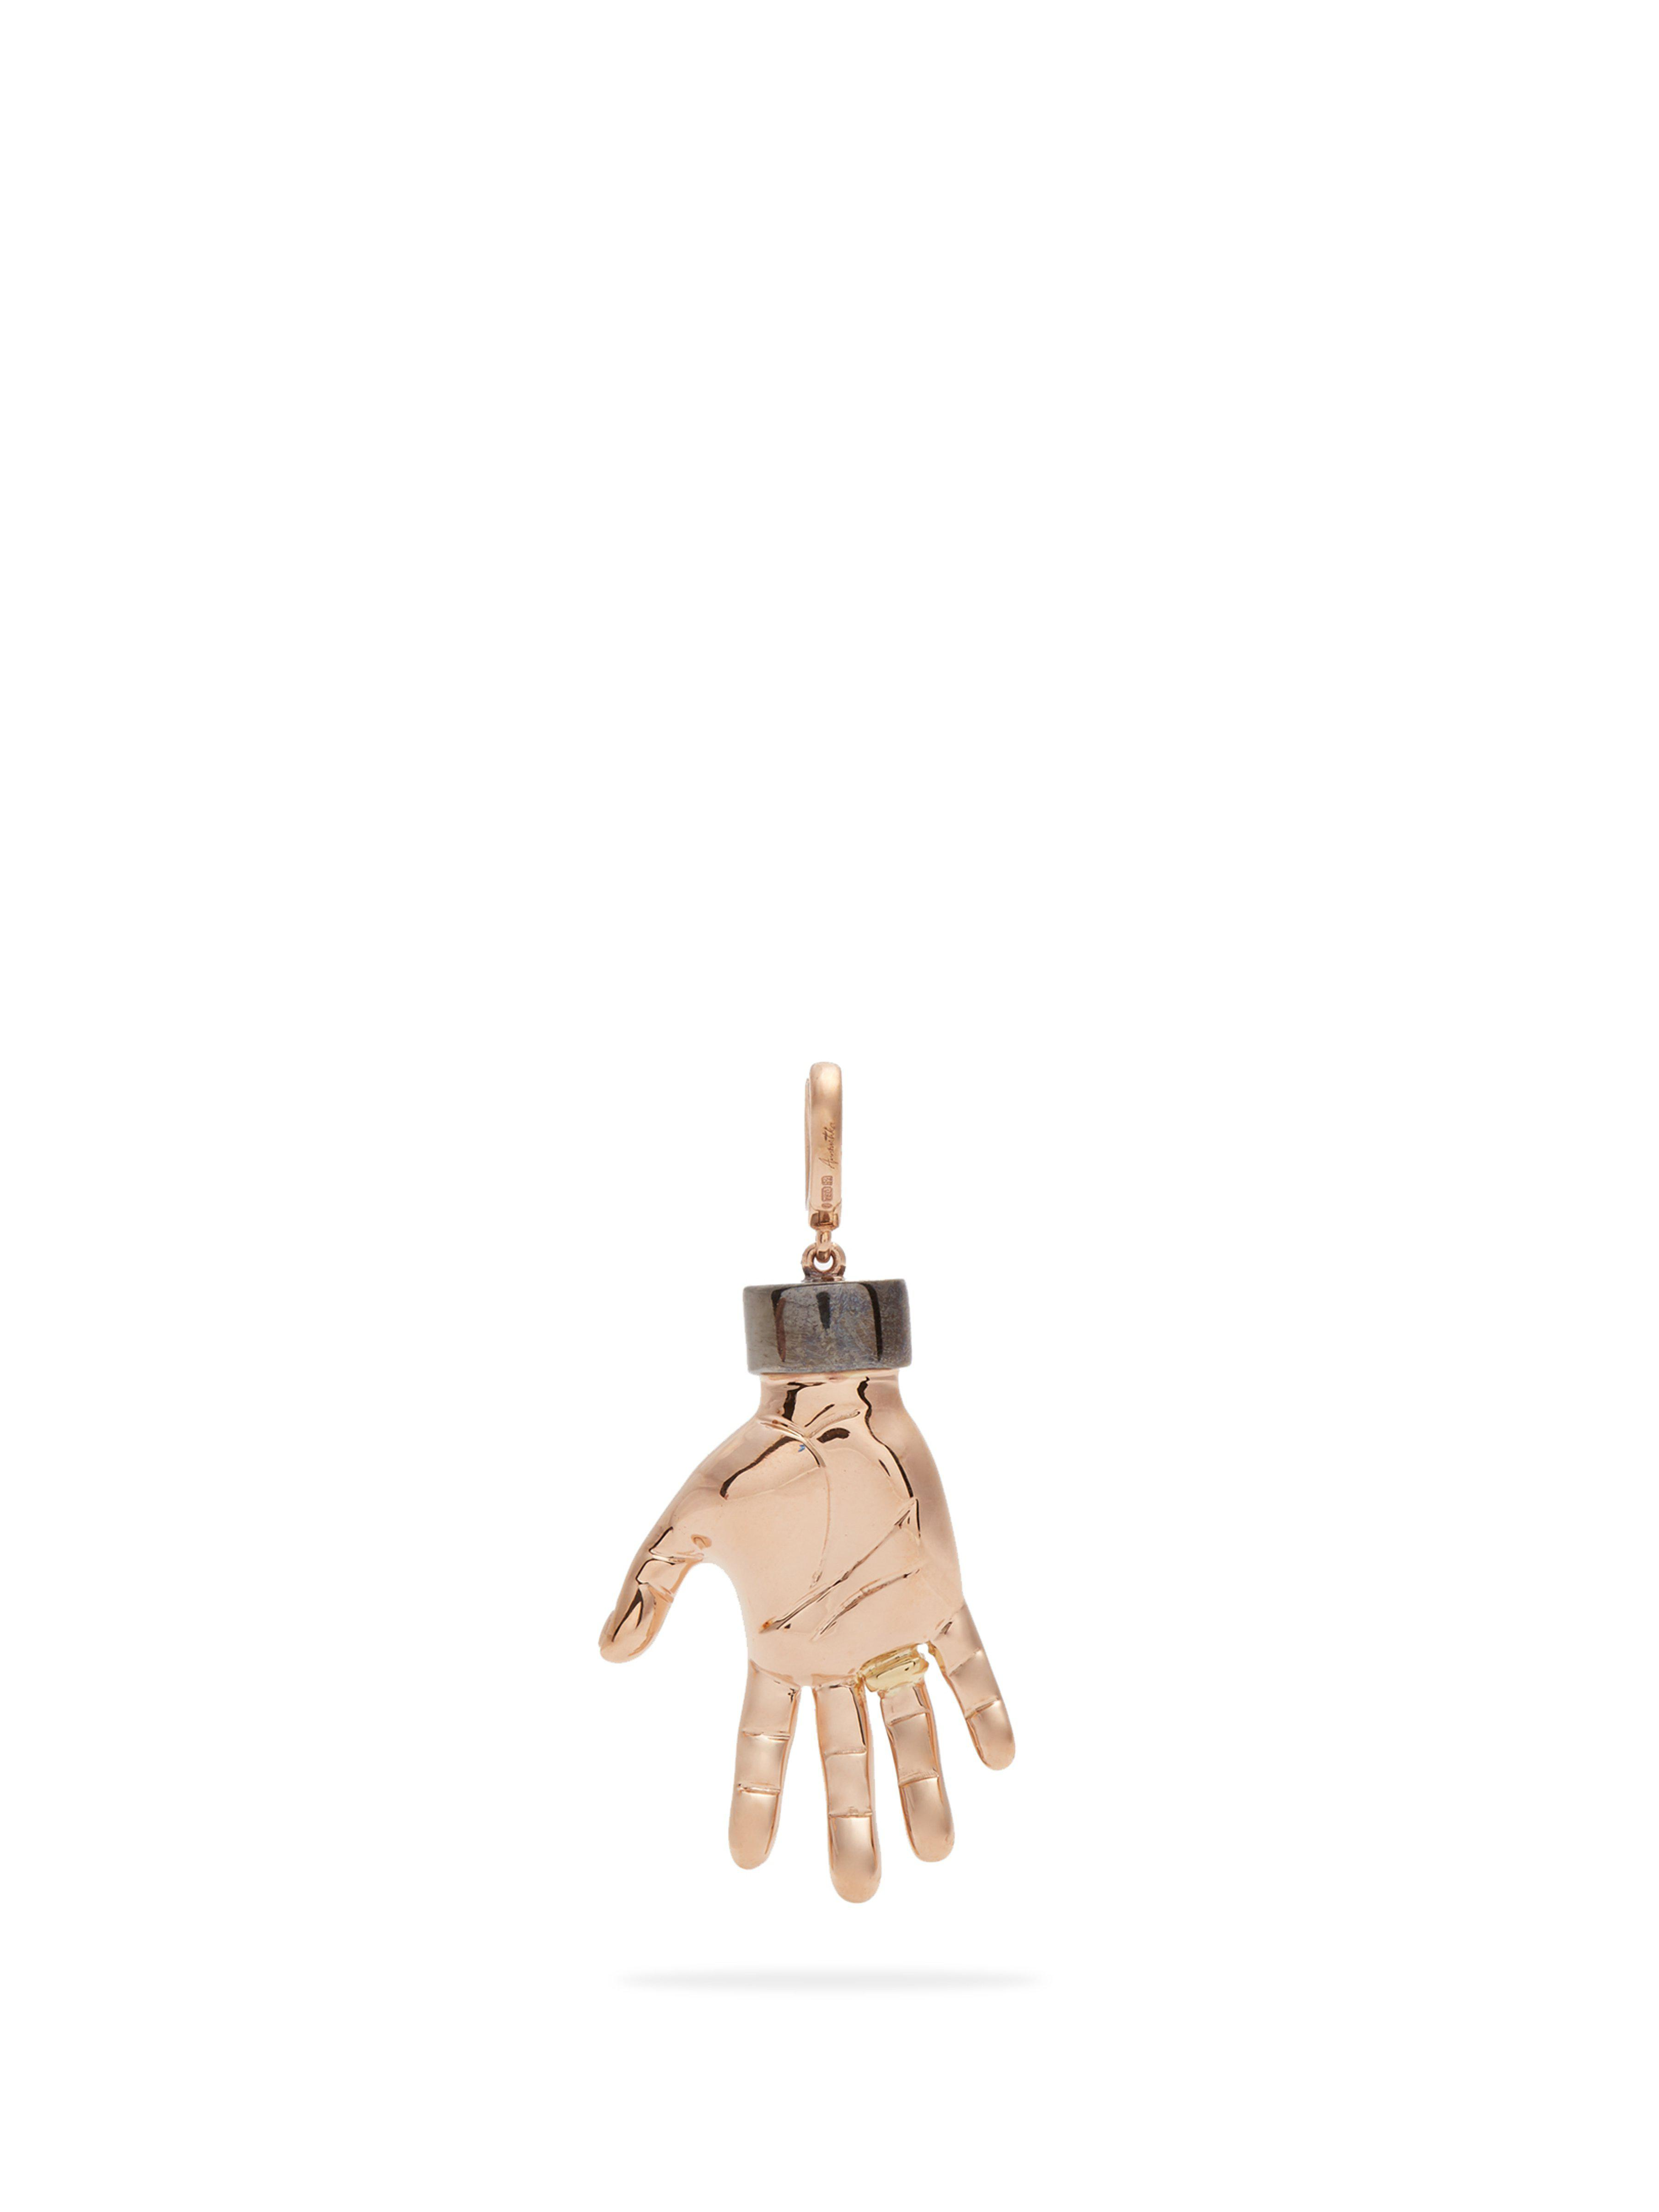 Annoushka X The Vampire's Wife Red Right Hand Charm